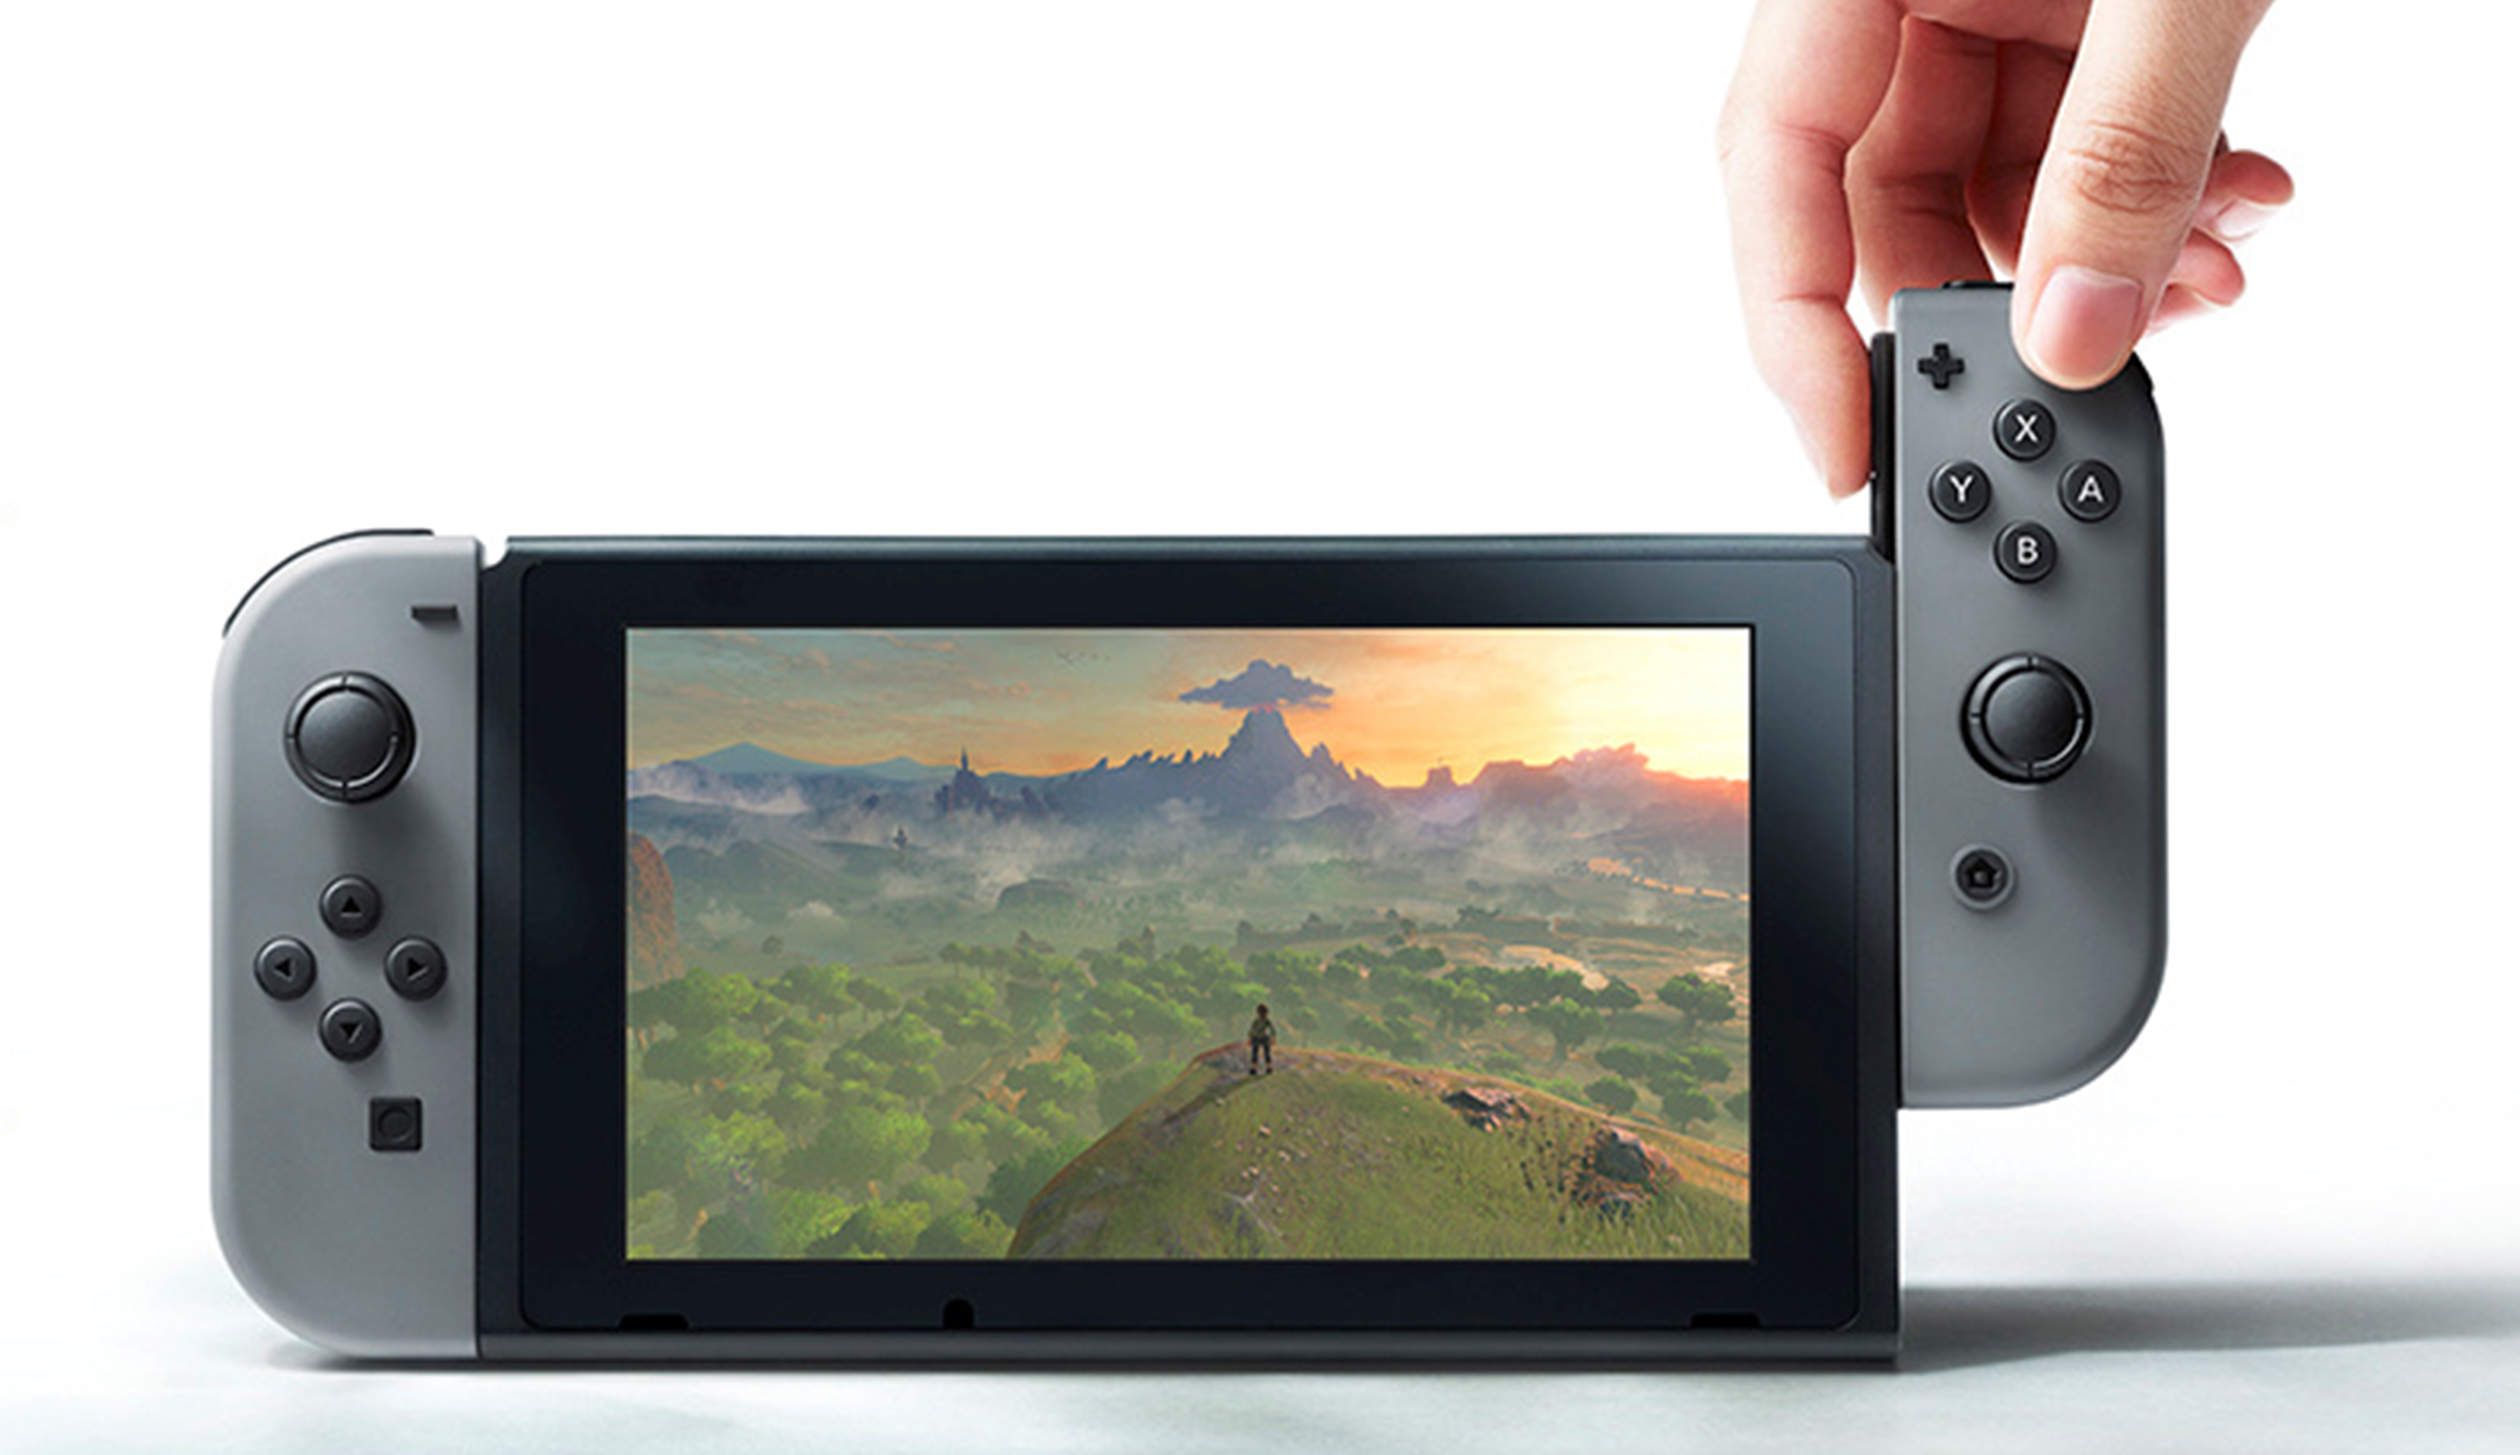 Undated handout image shows the Nintendo Switch, a new gaming device